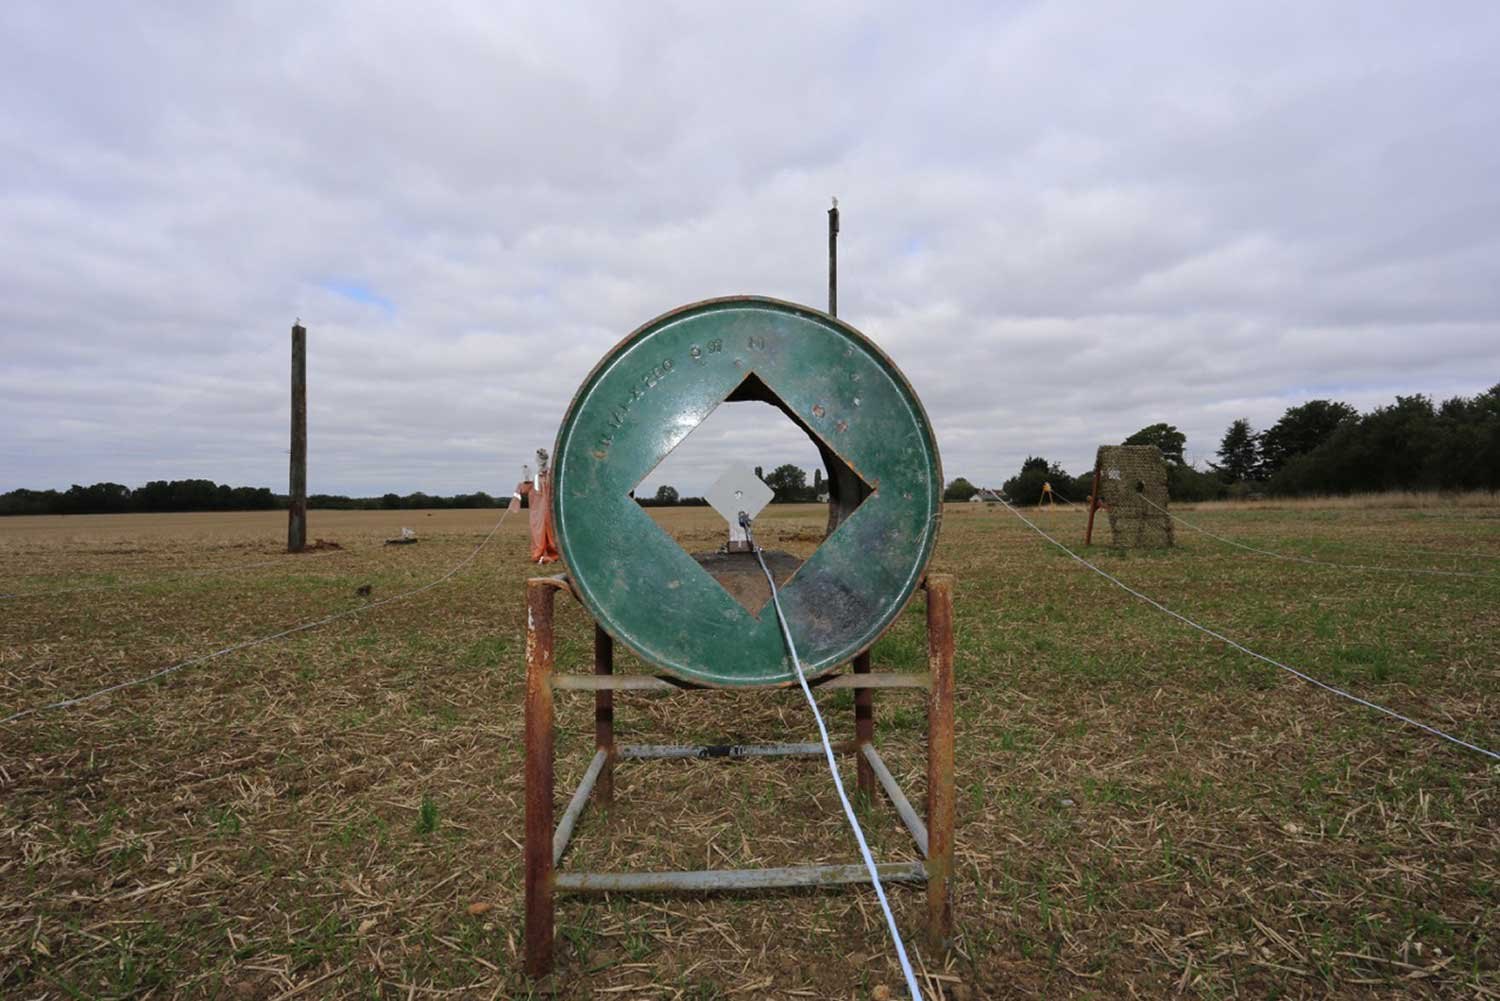 The Hunter Field Target Course (HFT) at Pete's Airgun Farm in Essex